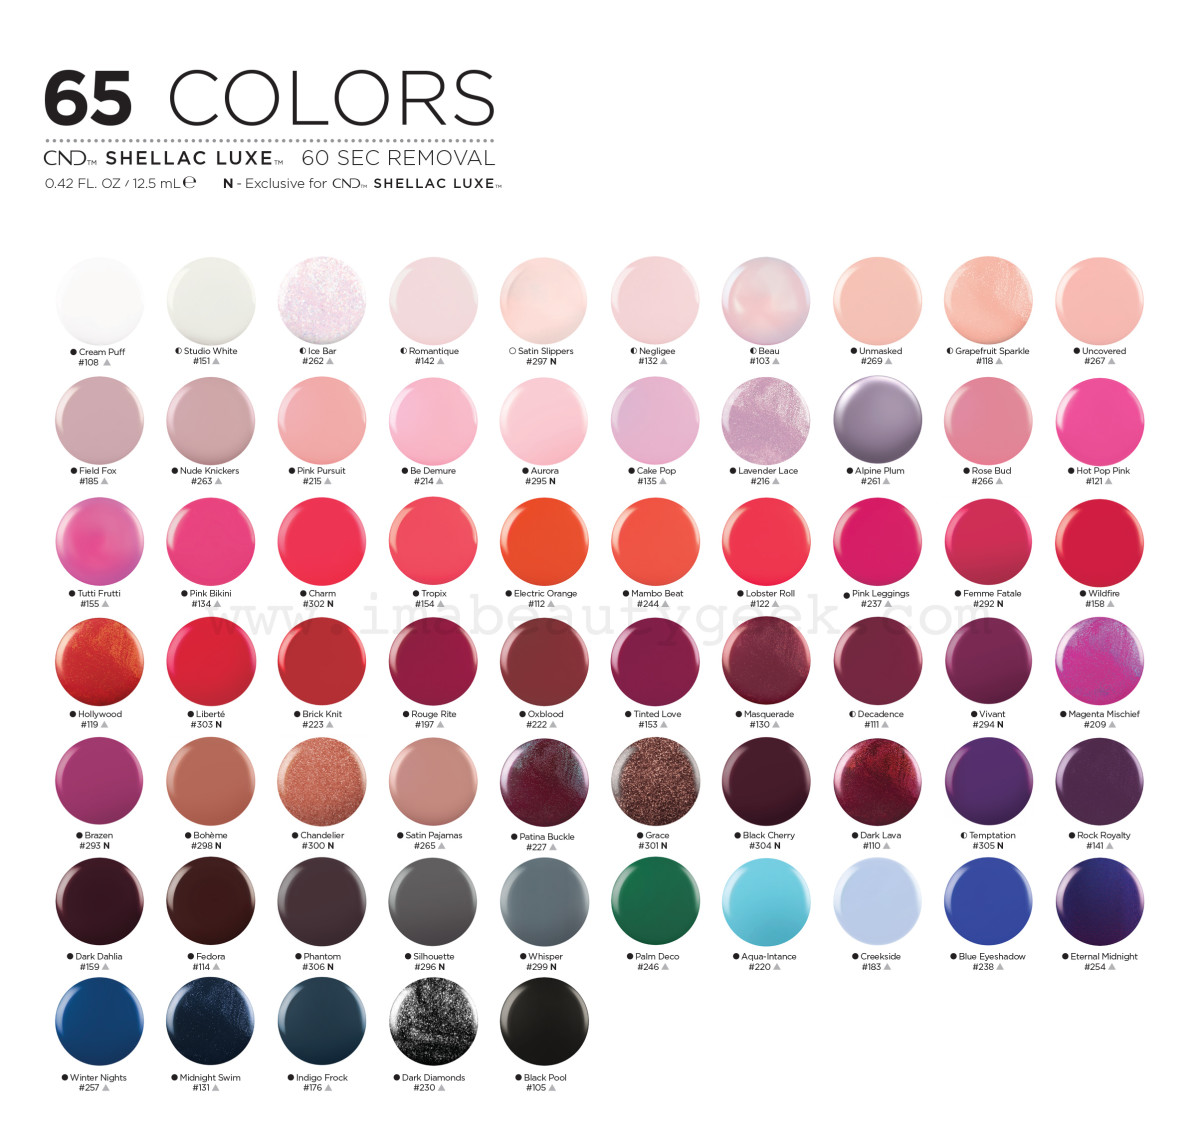 CND Shellac Luxe shade chart; 50 of them match Vinylux hues and 15 are exclusive to this line